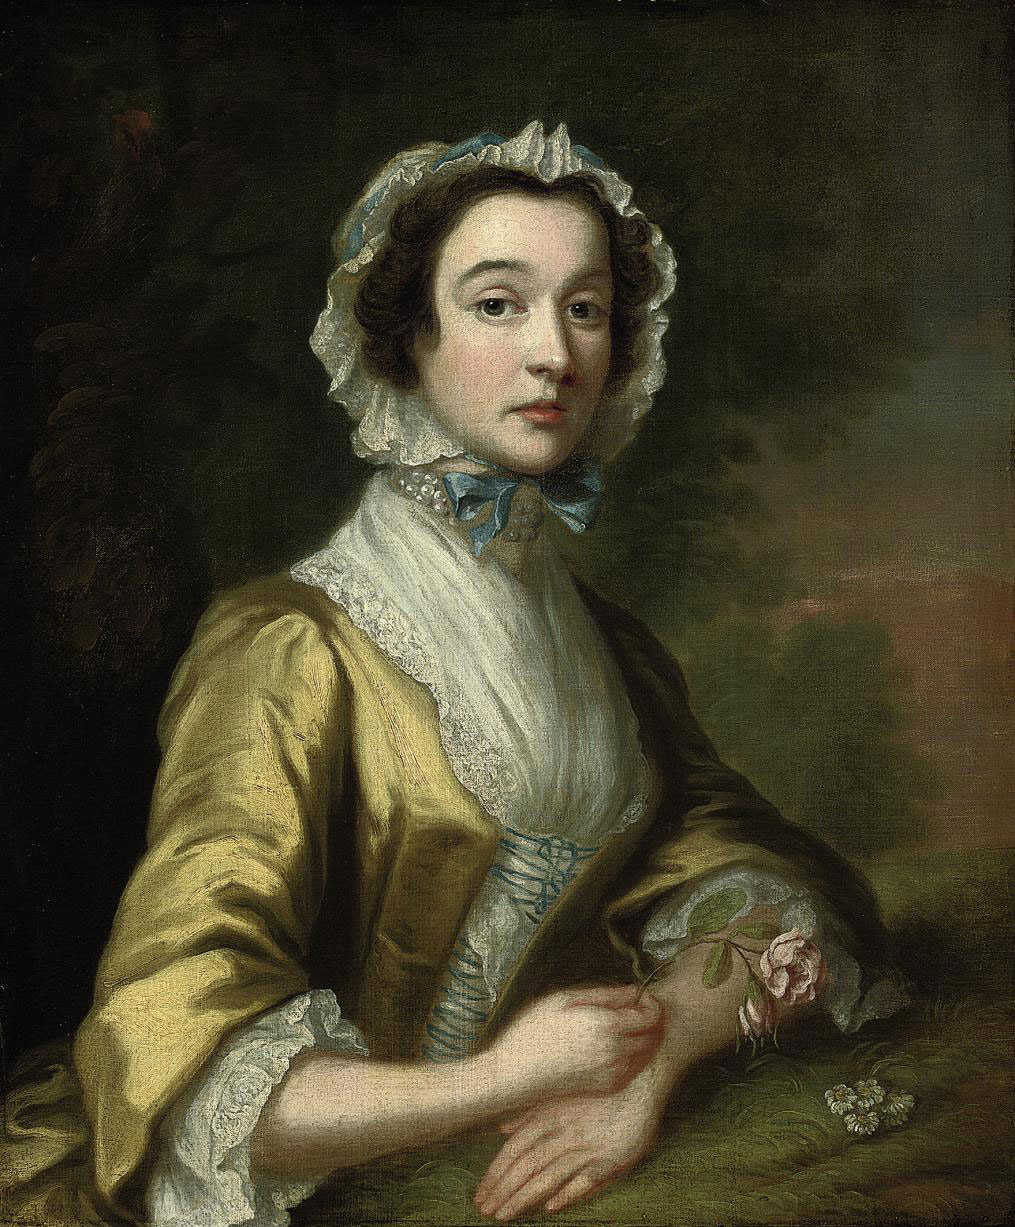 Portrait of a lady, half-length, in a lace trimmed yellow dress with a lace cap, a rose in her right hand, her left hand resting on a mossy bank, a landscape beyond